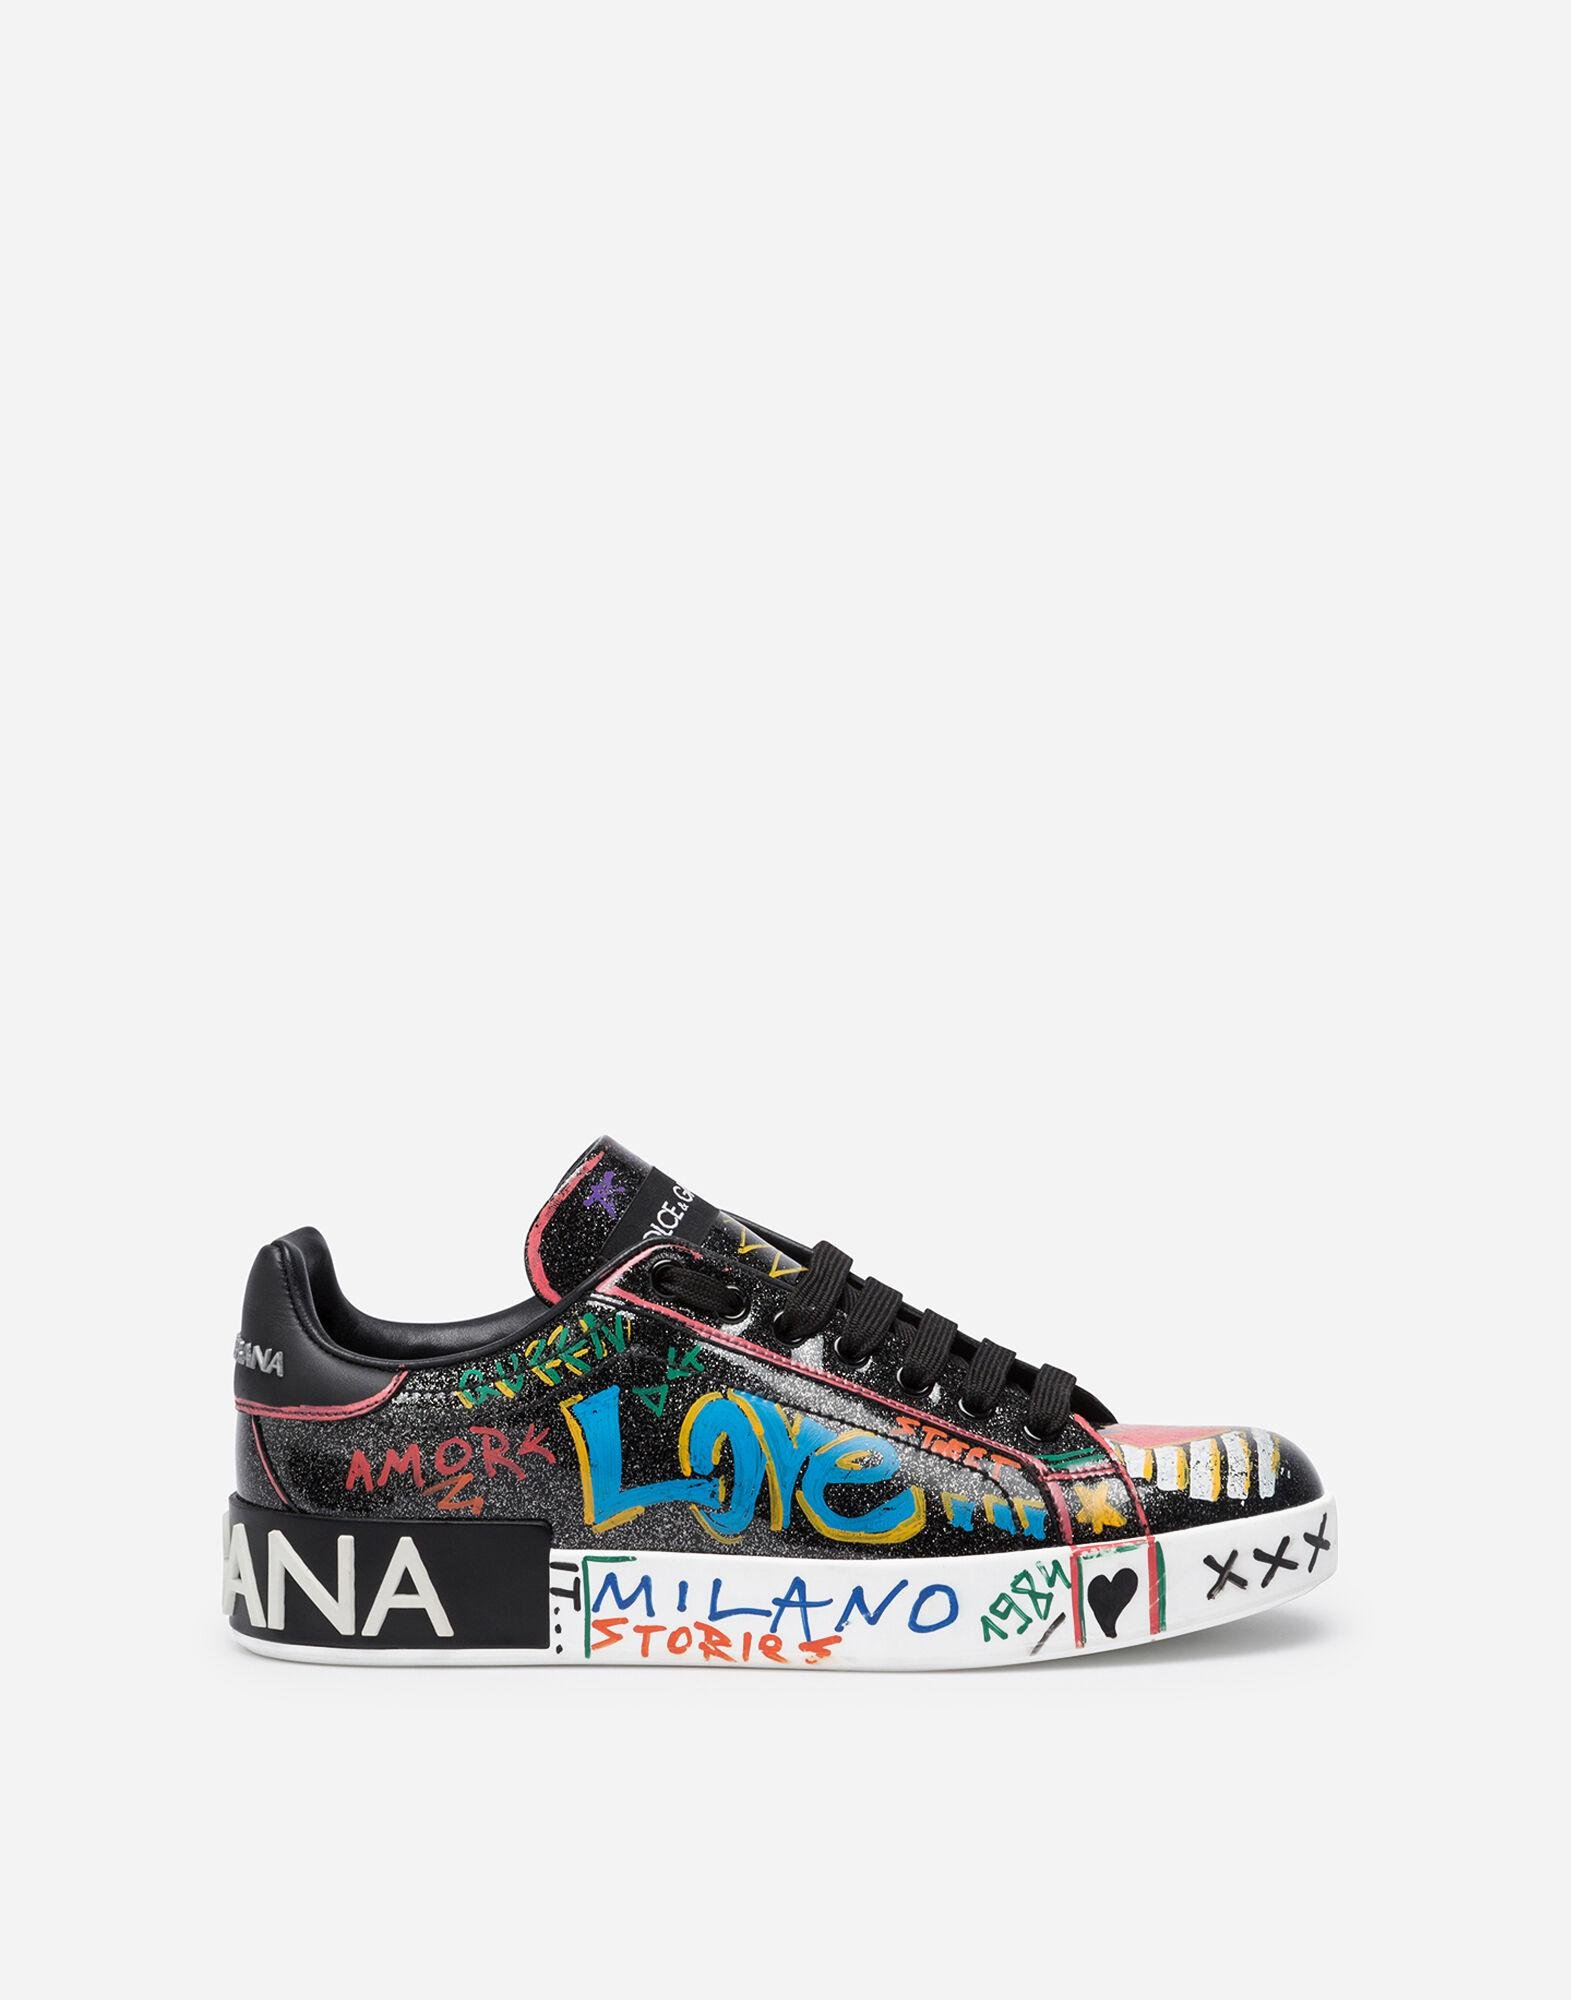 Portofino sneakers in patent leather with printed writing